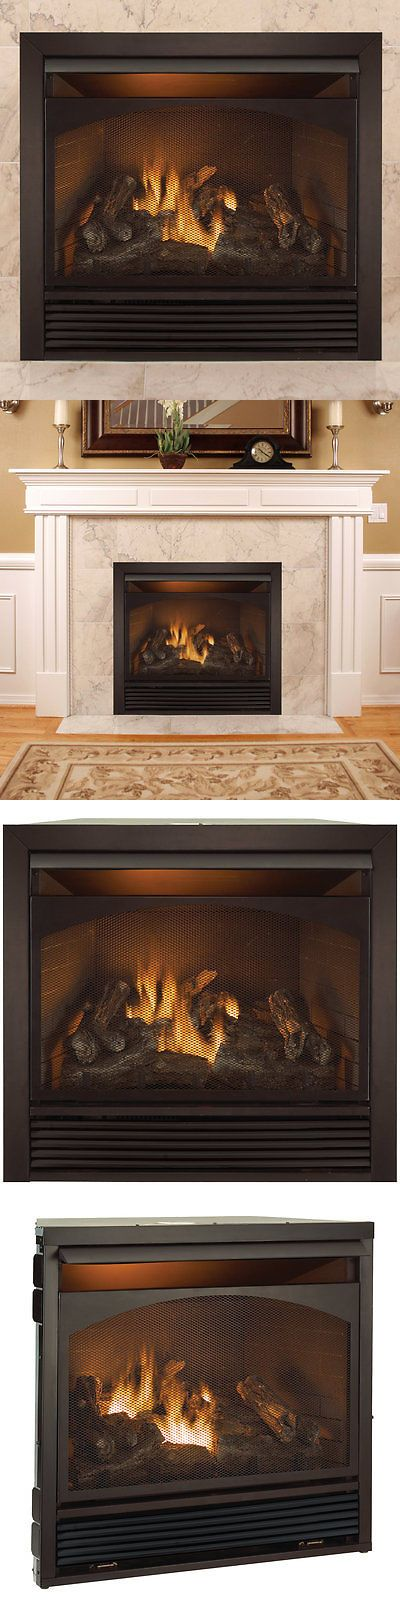 Fireplaces 175756: Duluth Forge Full Size Dual Fuel Ventless Natural Gas Propane Fireplace Insert -> BUY IT NOW ONLY: $749.99 on eBay!